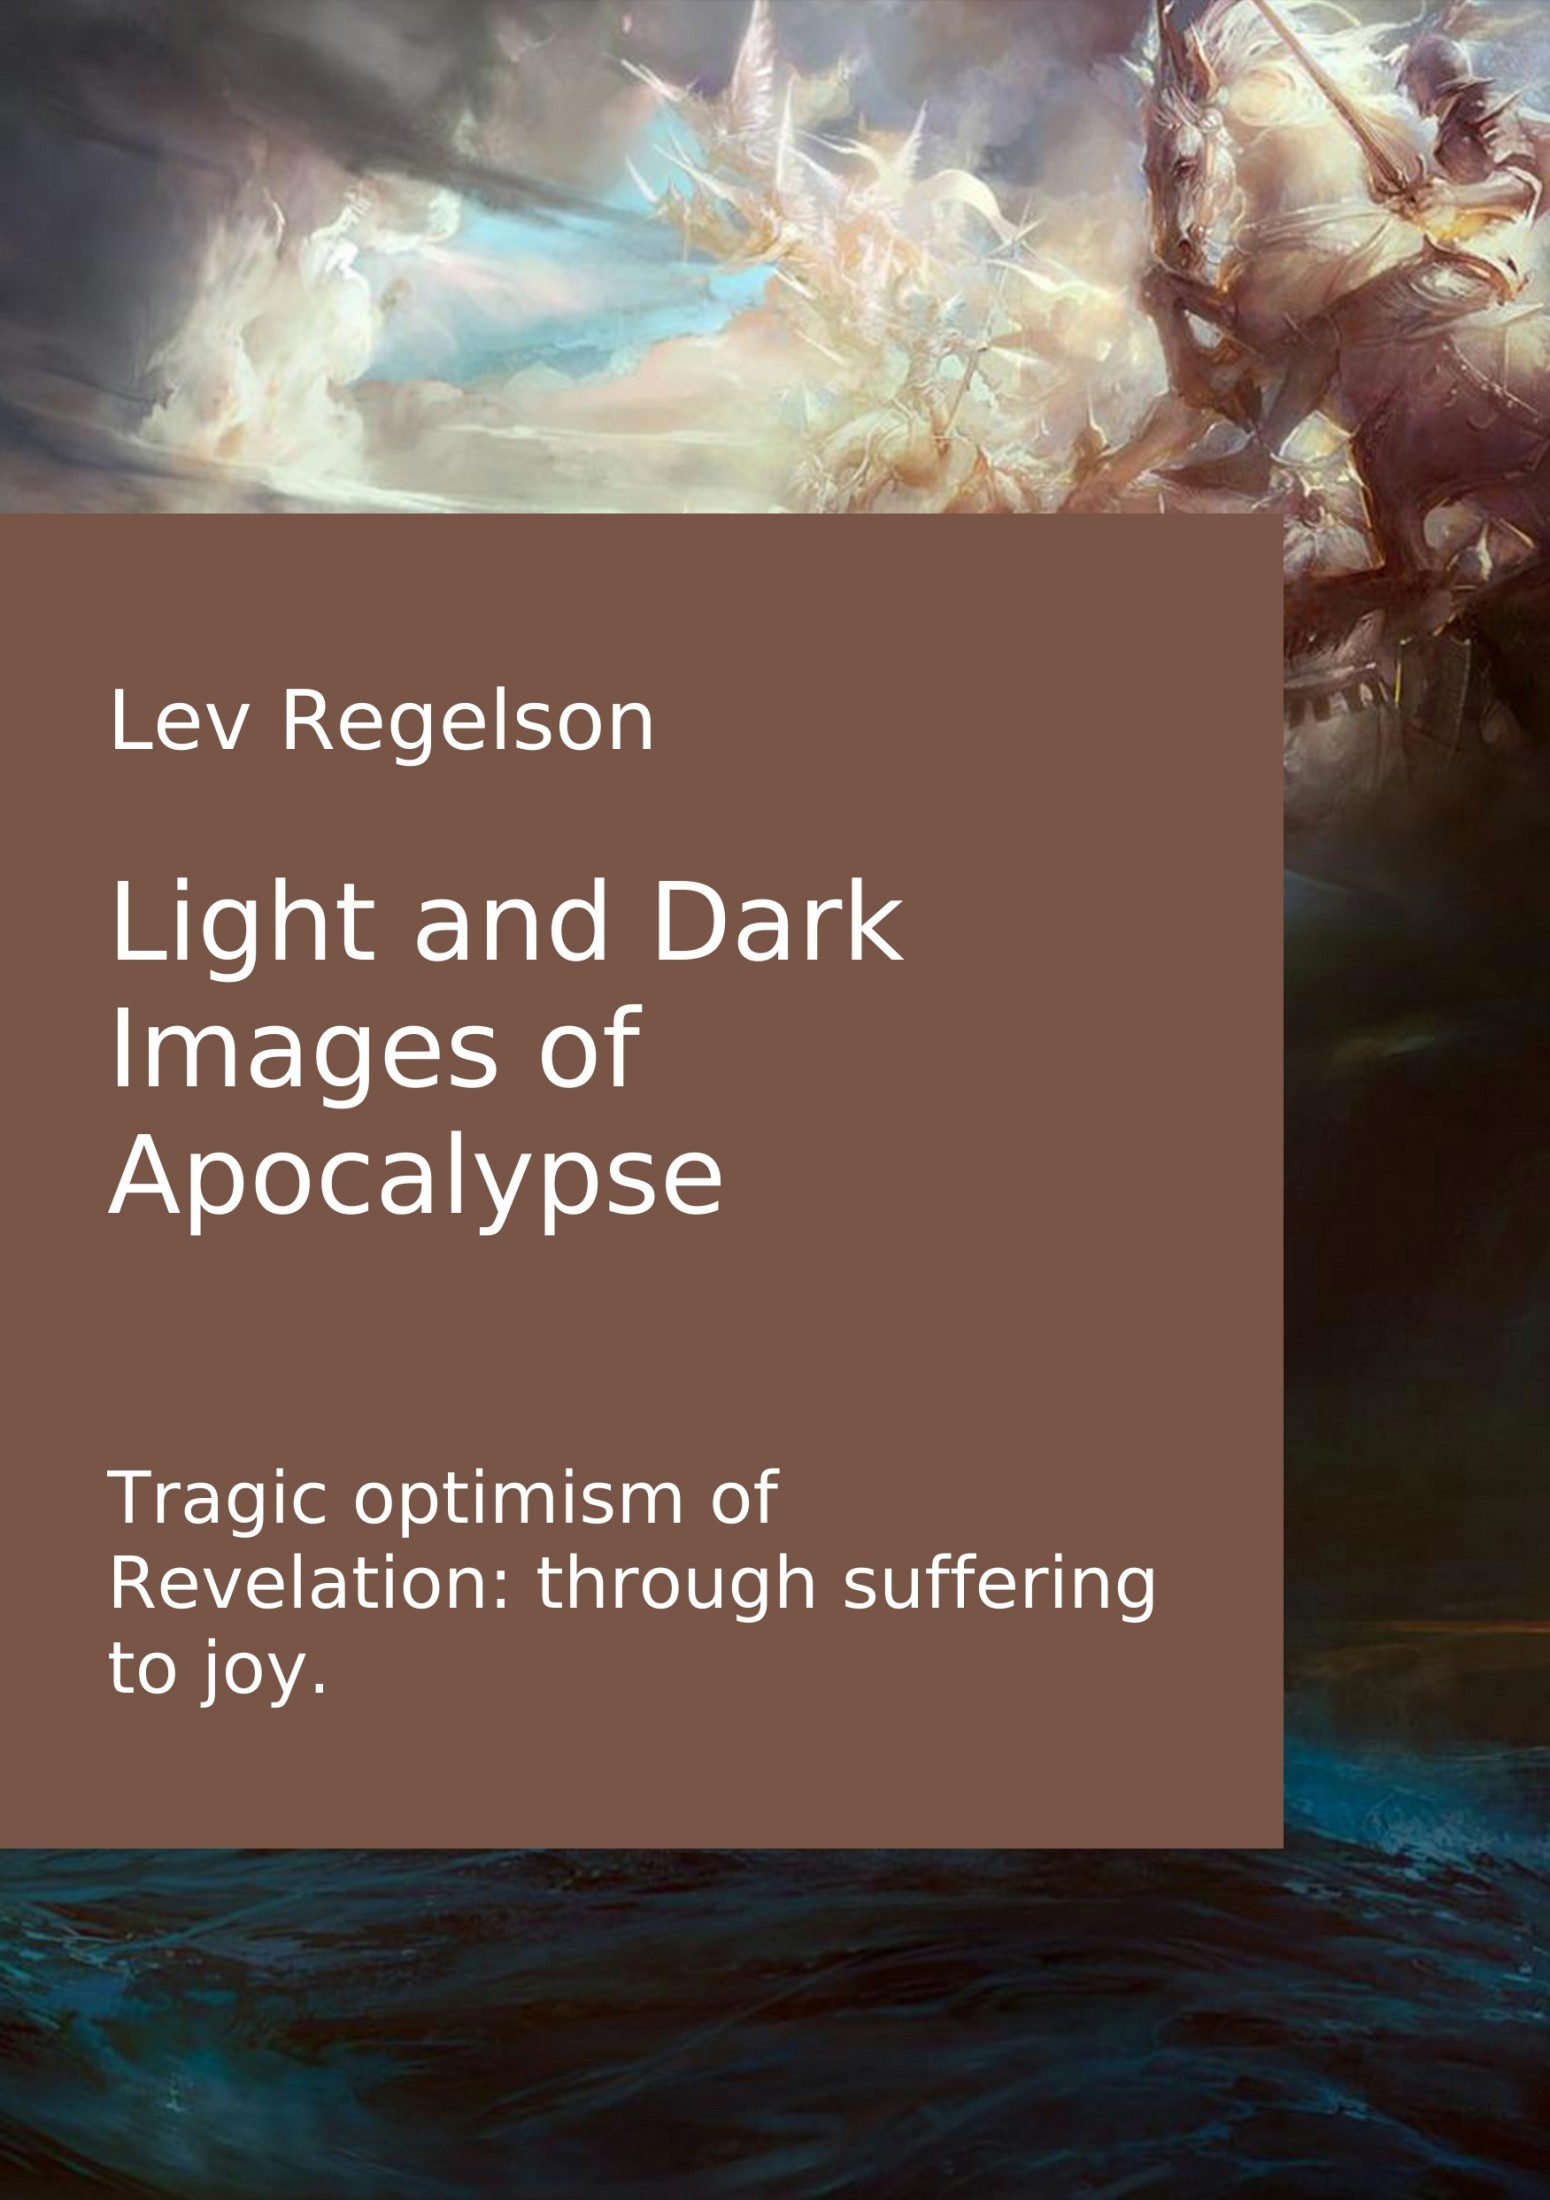 Lev Regelson Light and Dark Images of Apocalypse osteoporosis on quantifying the radiographic manifestation